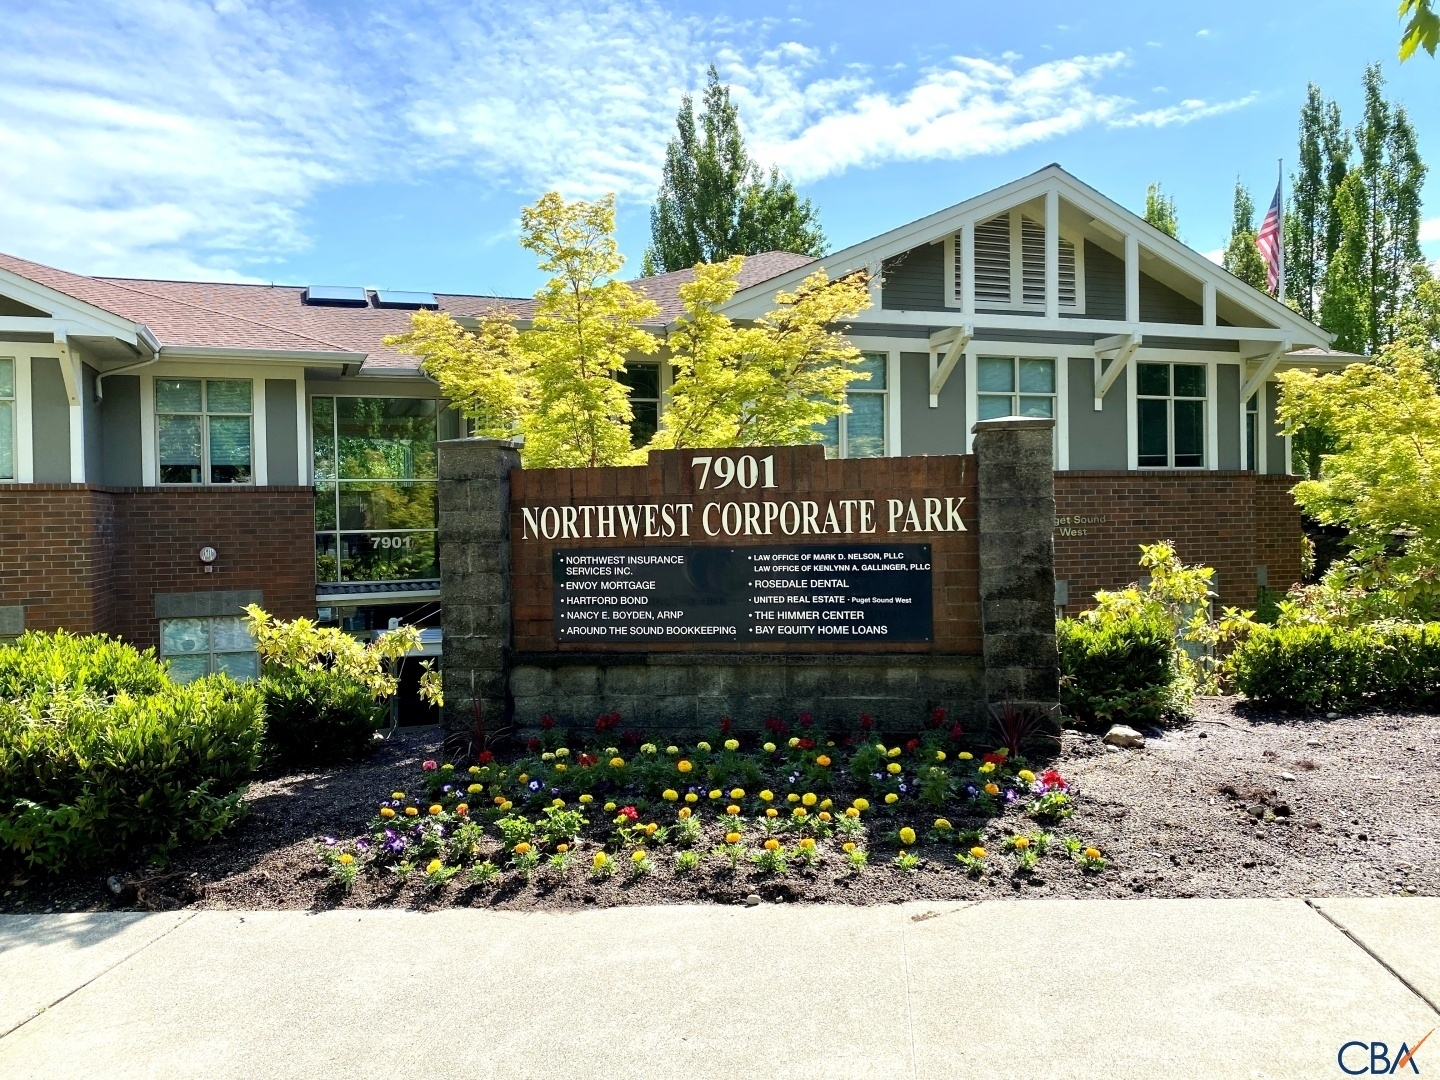 Northwest Corporate Park